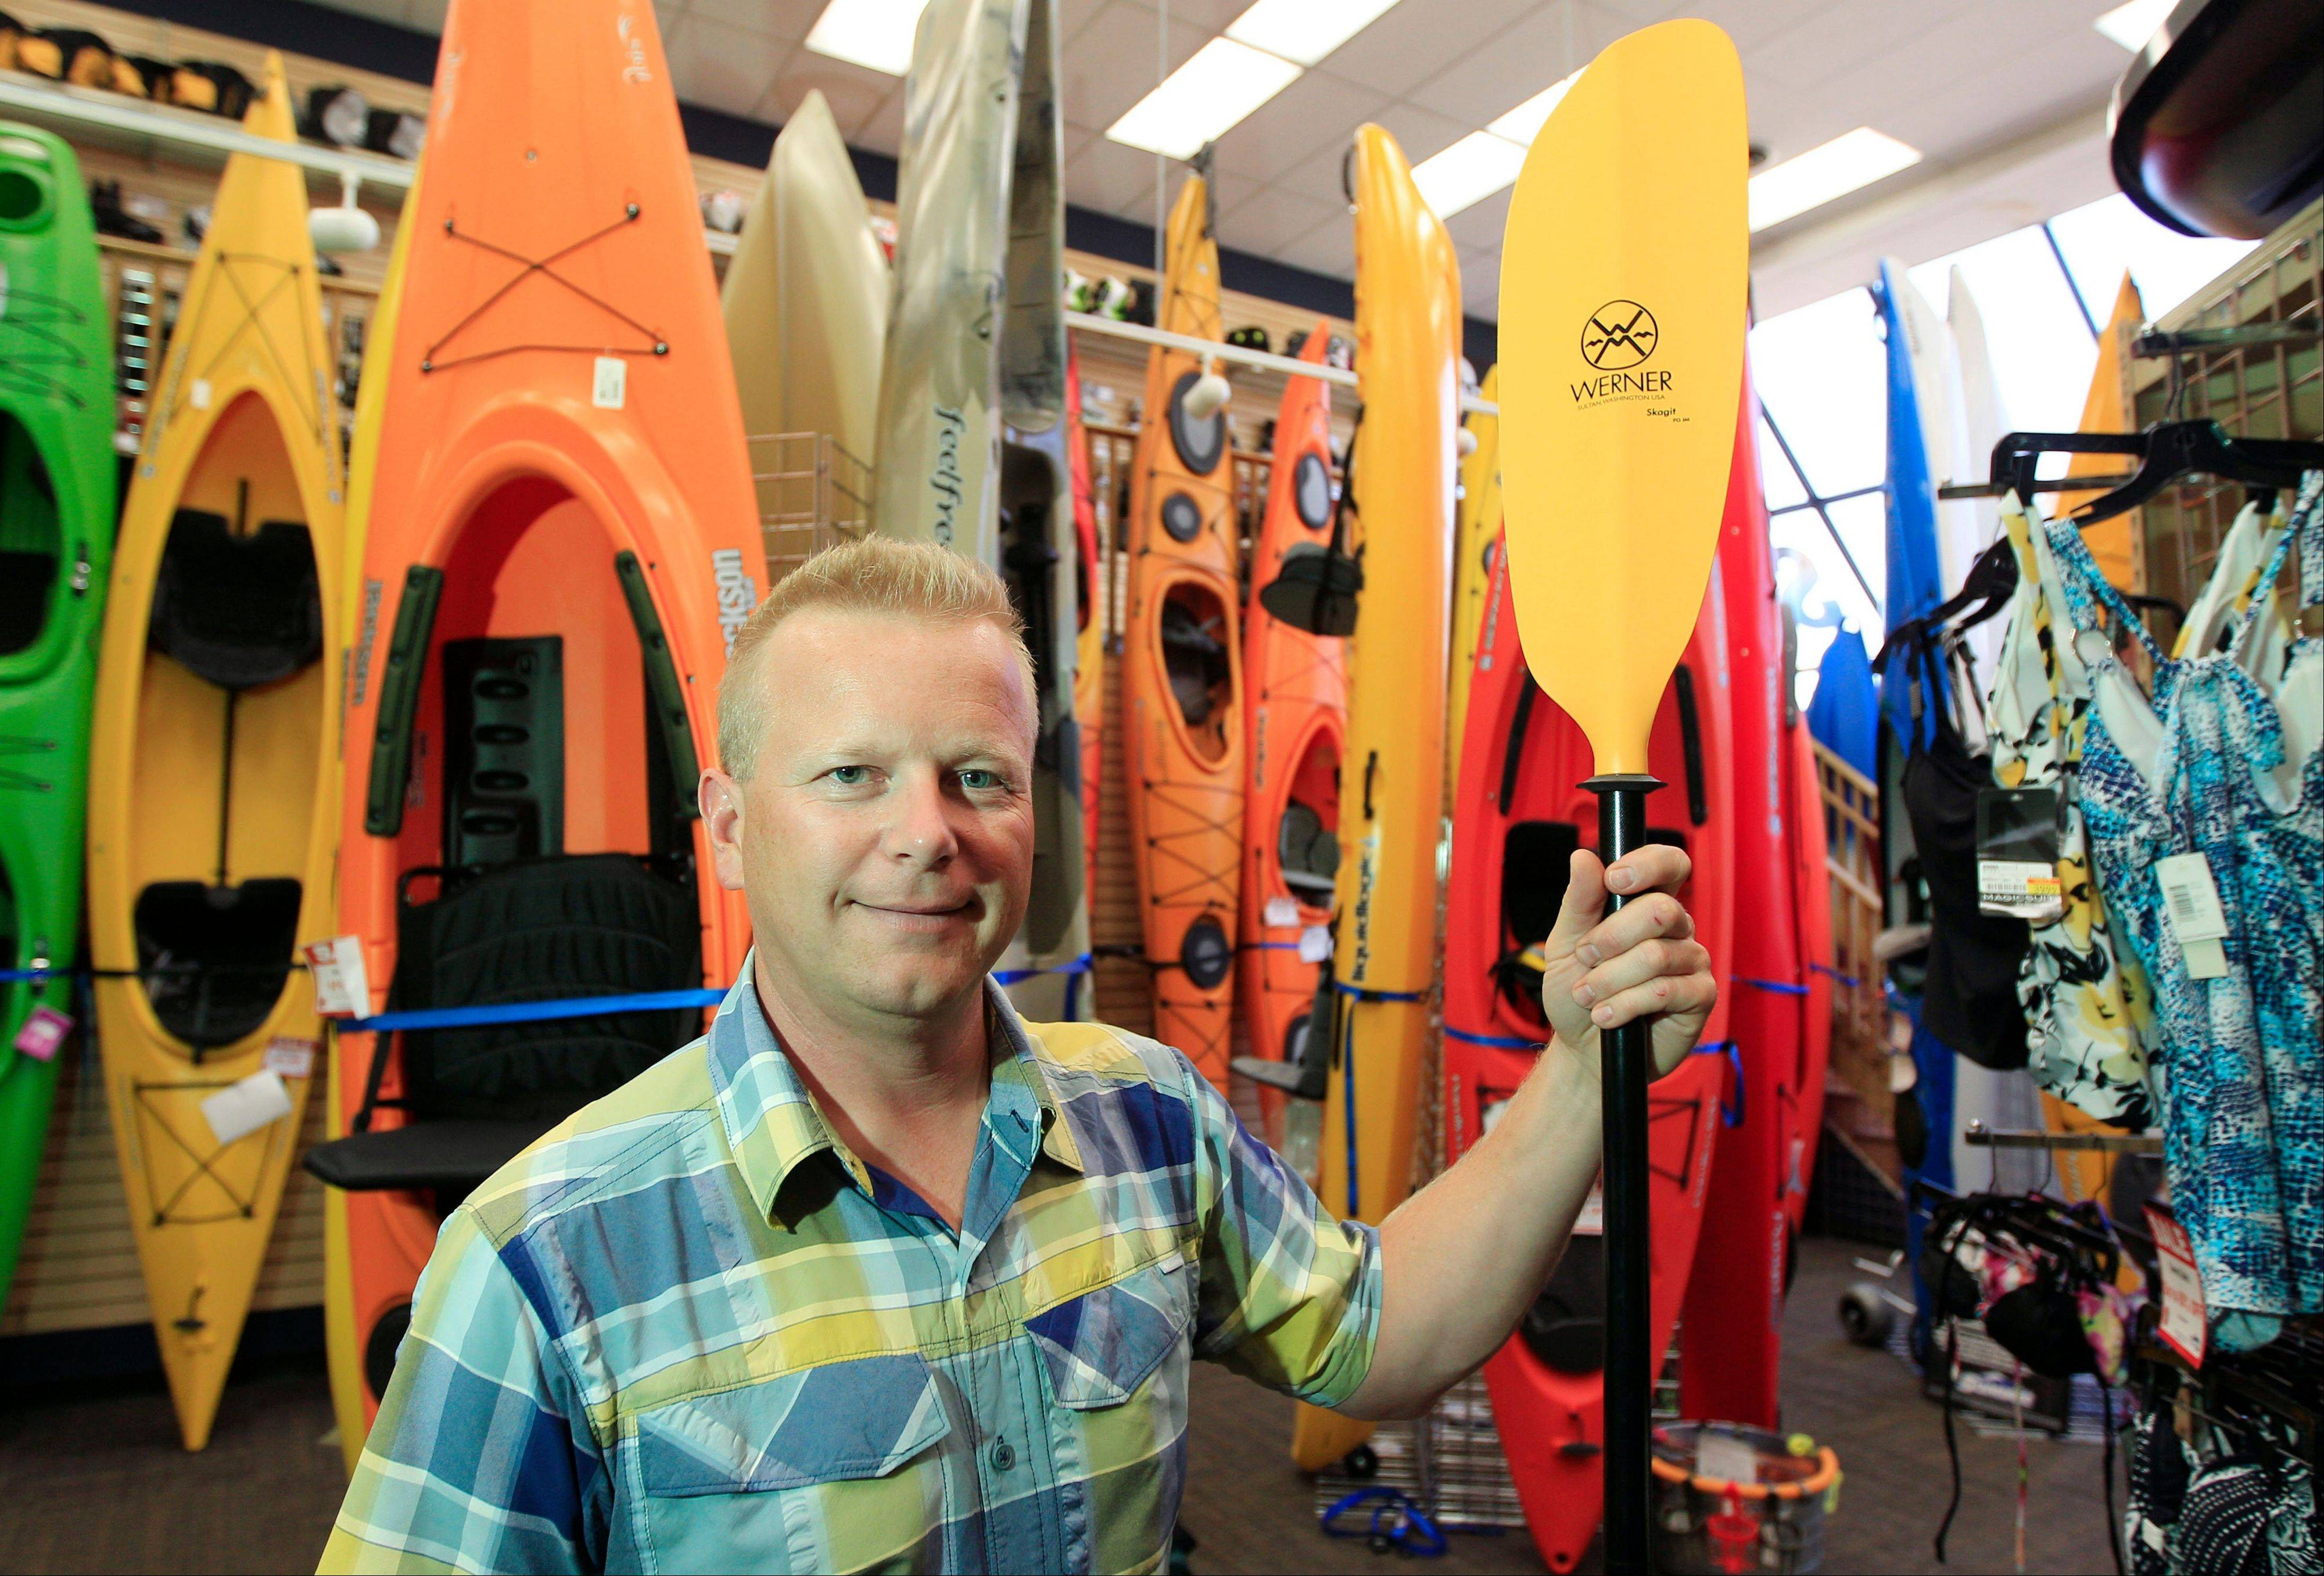 Andy Schepper, vice president of Summit Sports in Keego Harbor, Mich., says having a big online retail operation has helped insulate Summit. Schepper says the stores bring in only 25 percent of sales.